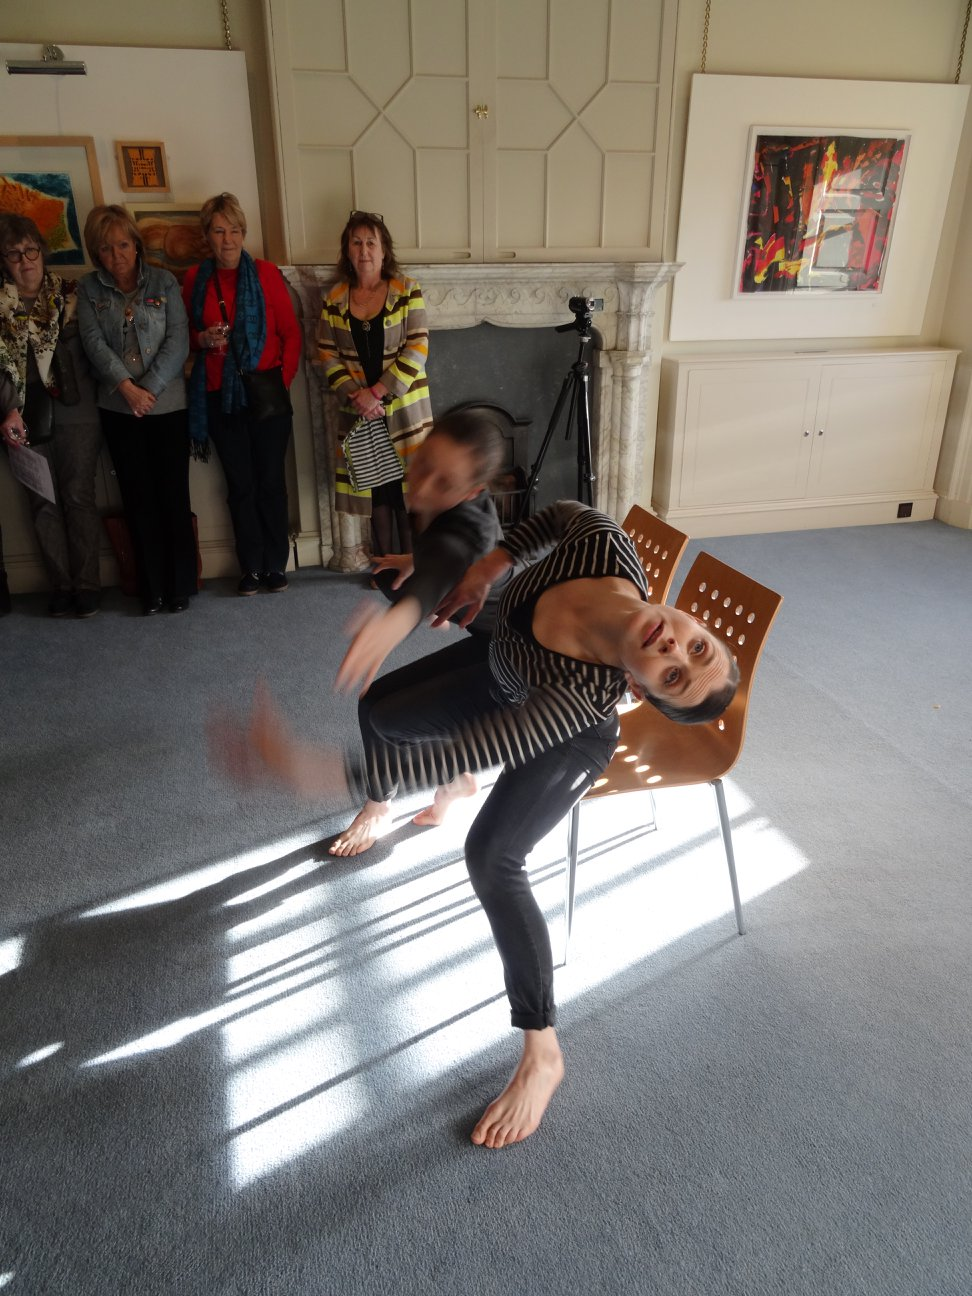 people in a room with two people in middle doing a performative dance.